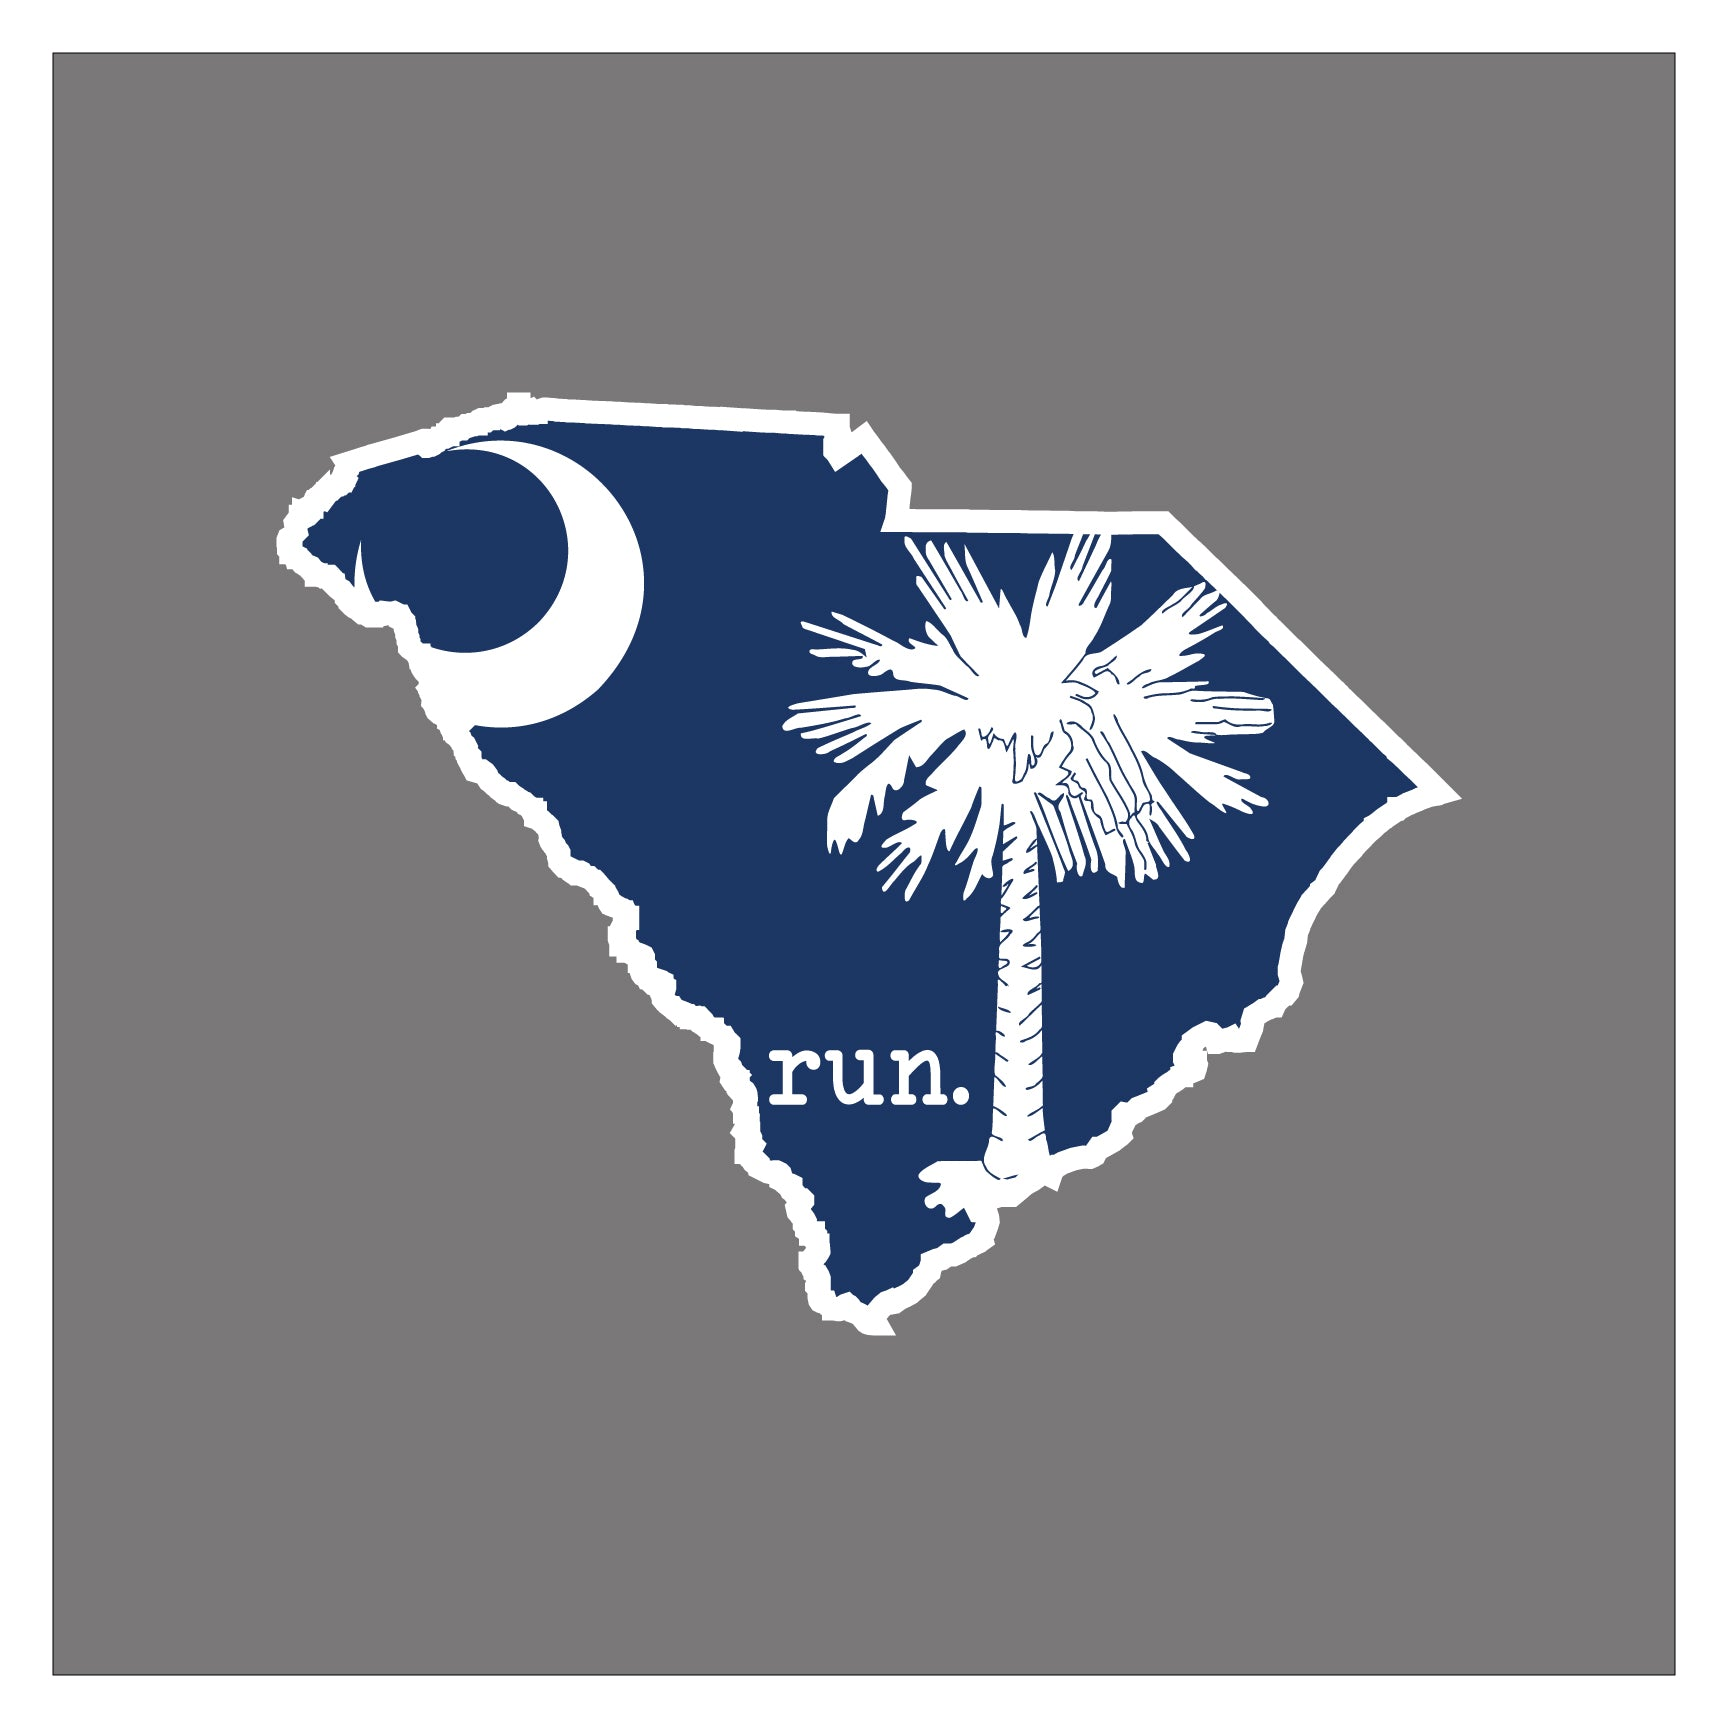 Run South Carolina State Outline Magnet State Flag Background Baysix